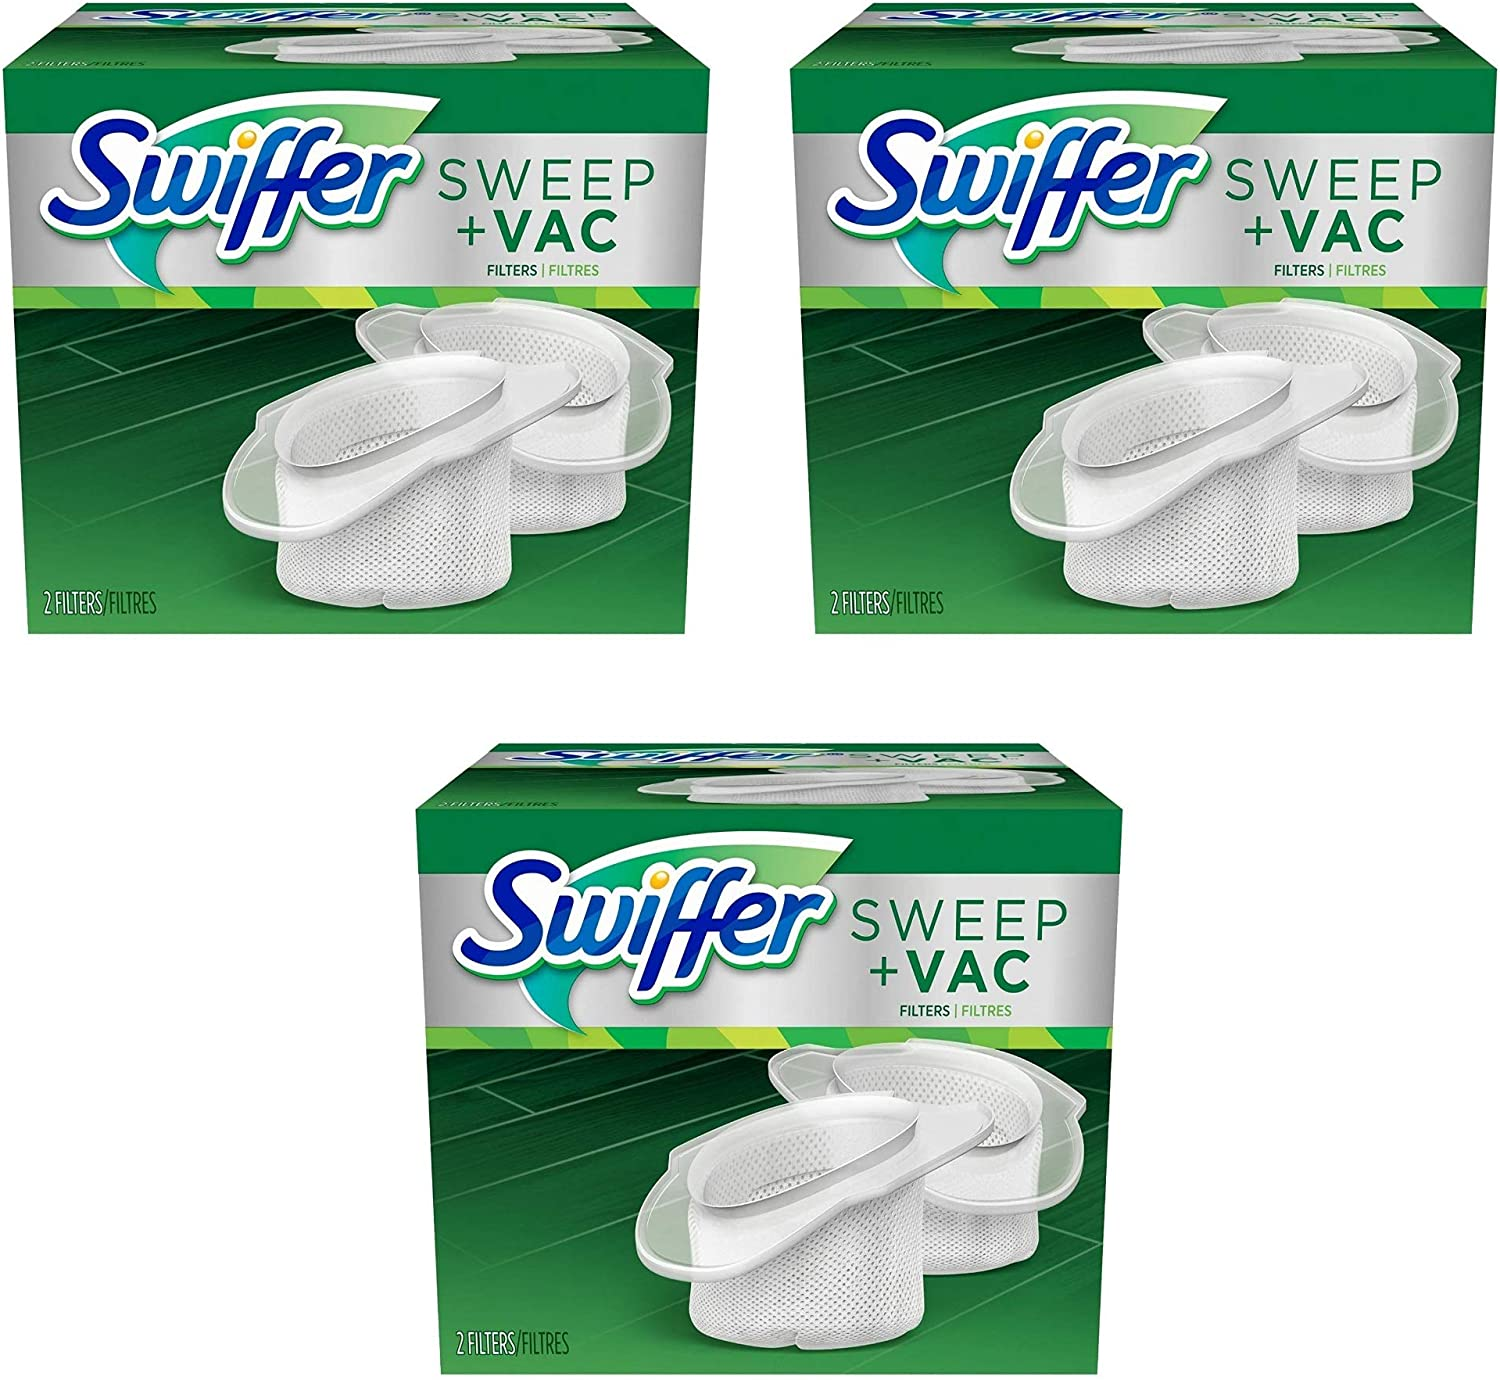 VAC FILTERS 4 filters 2 Boxes SWIFFER SWEEP